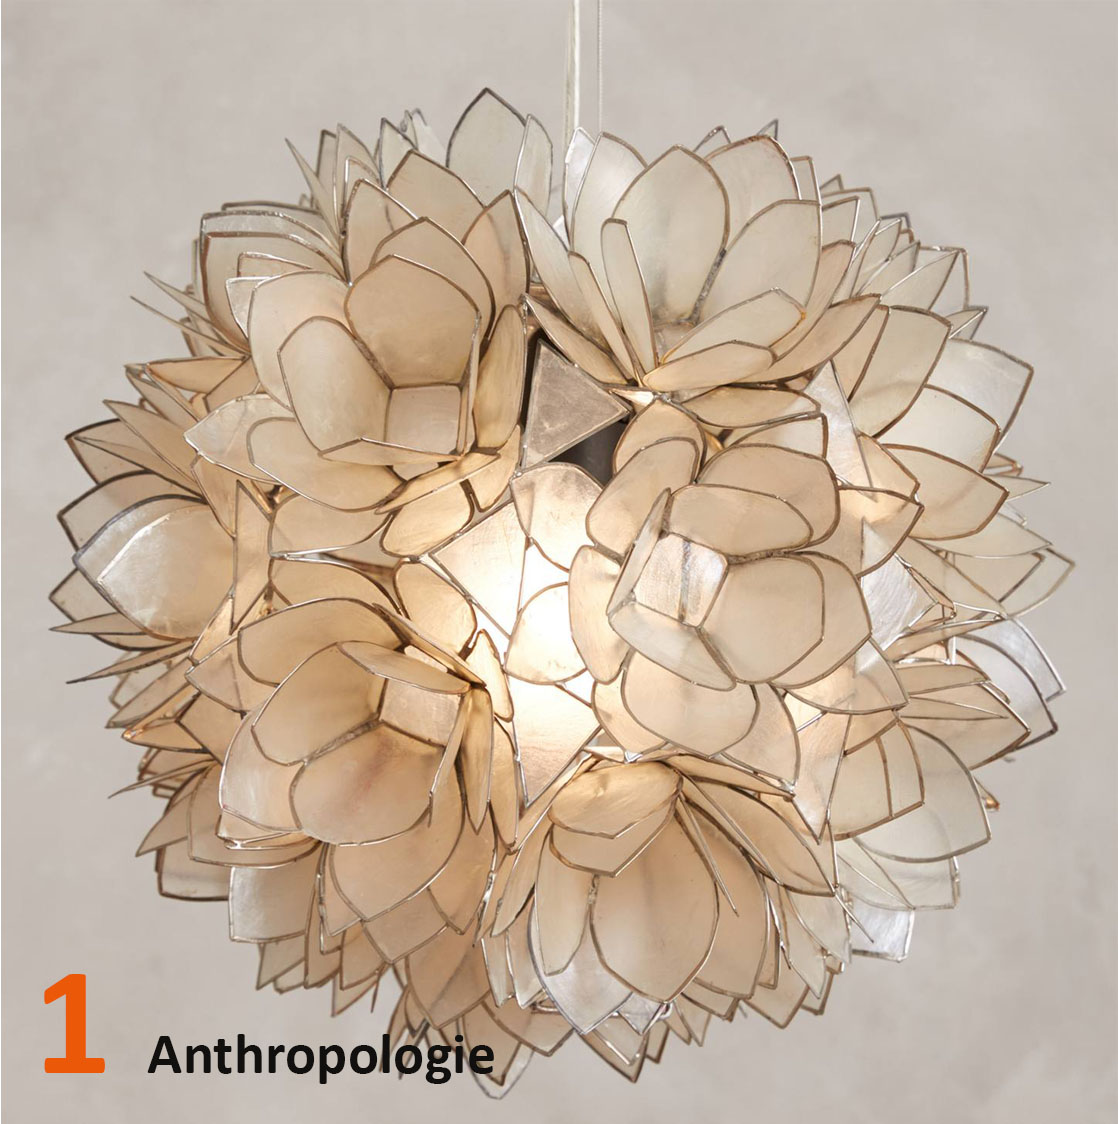 1-Anthropologie.jpg